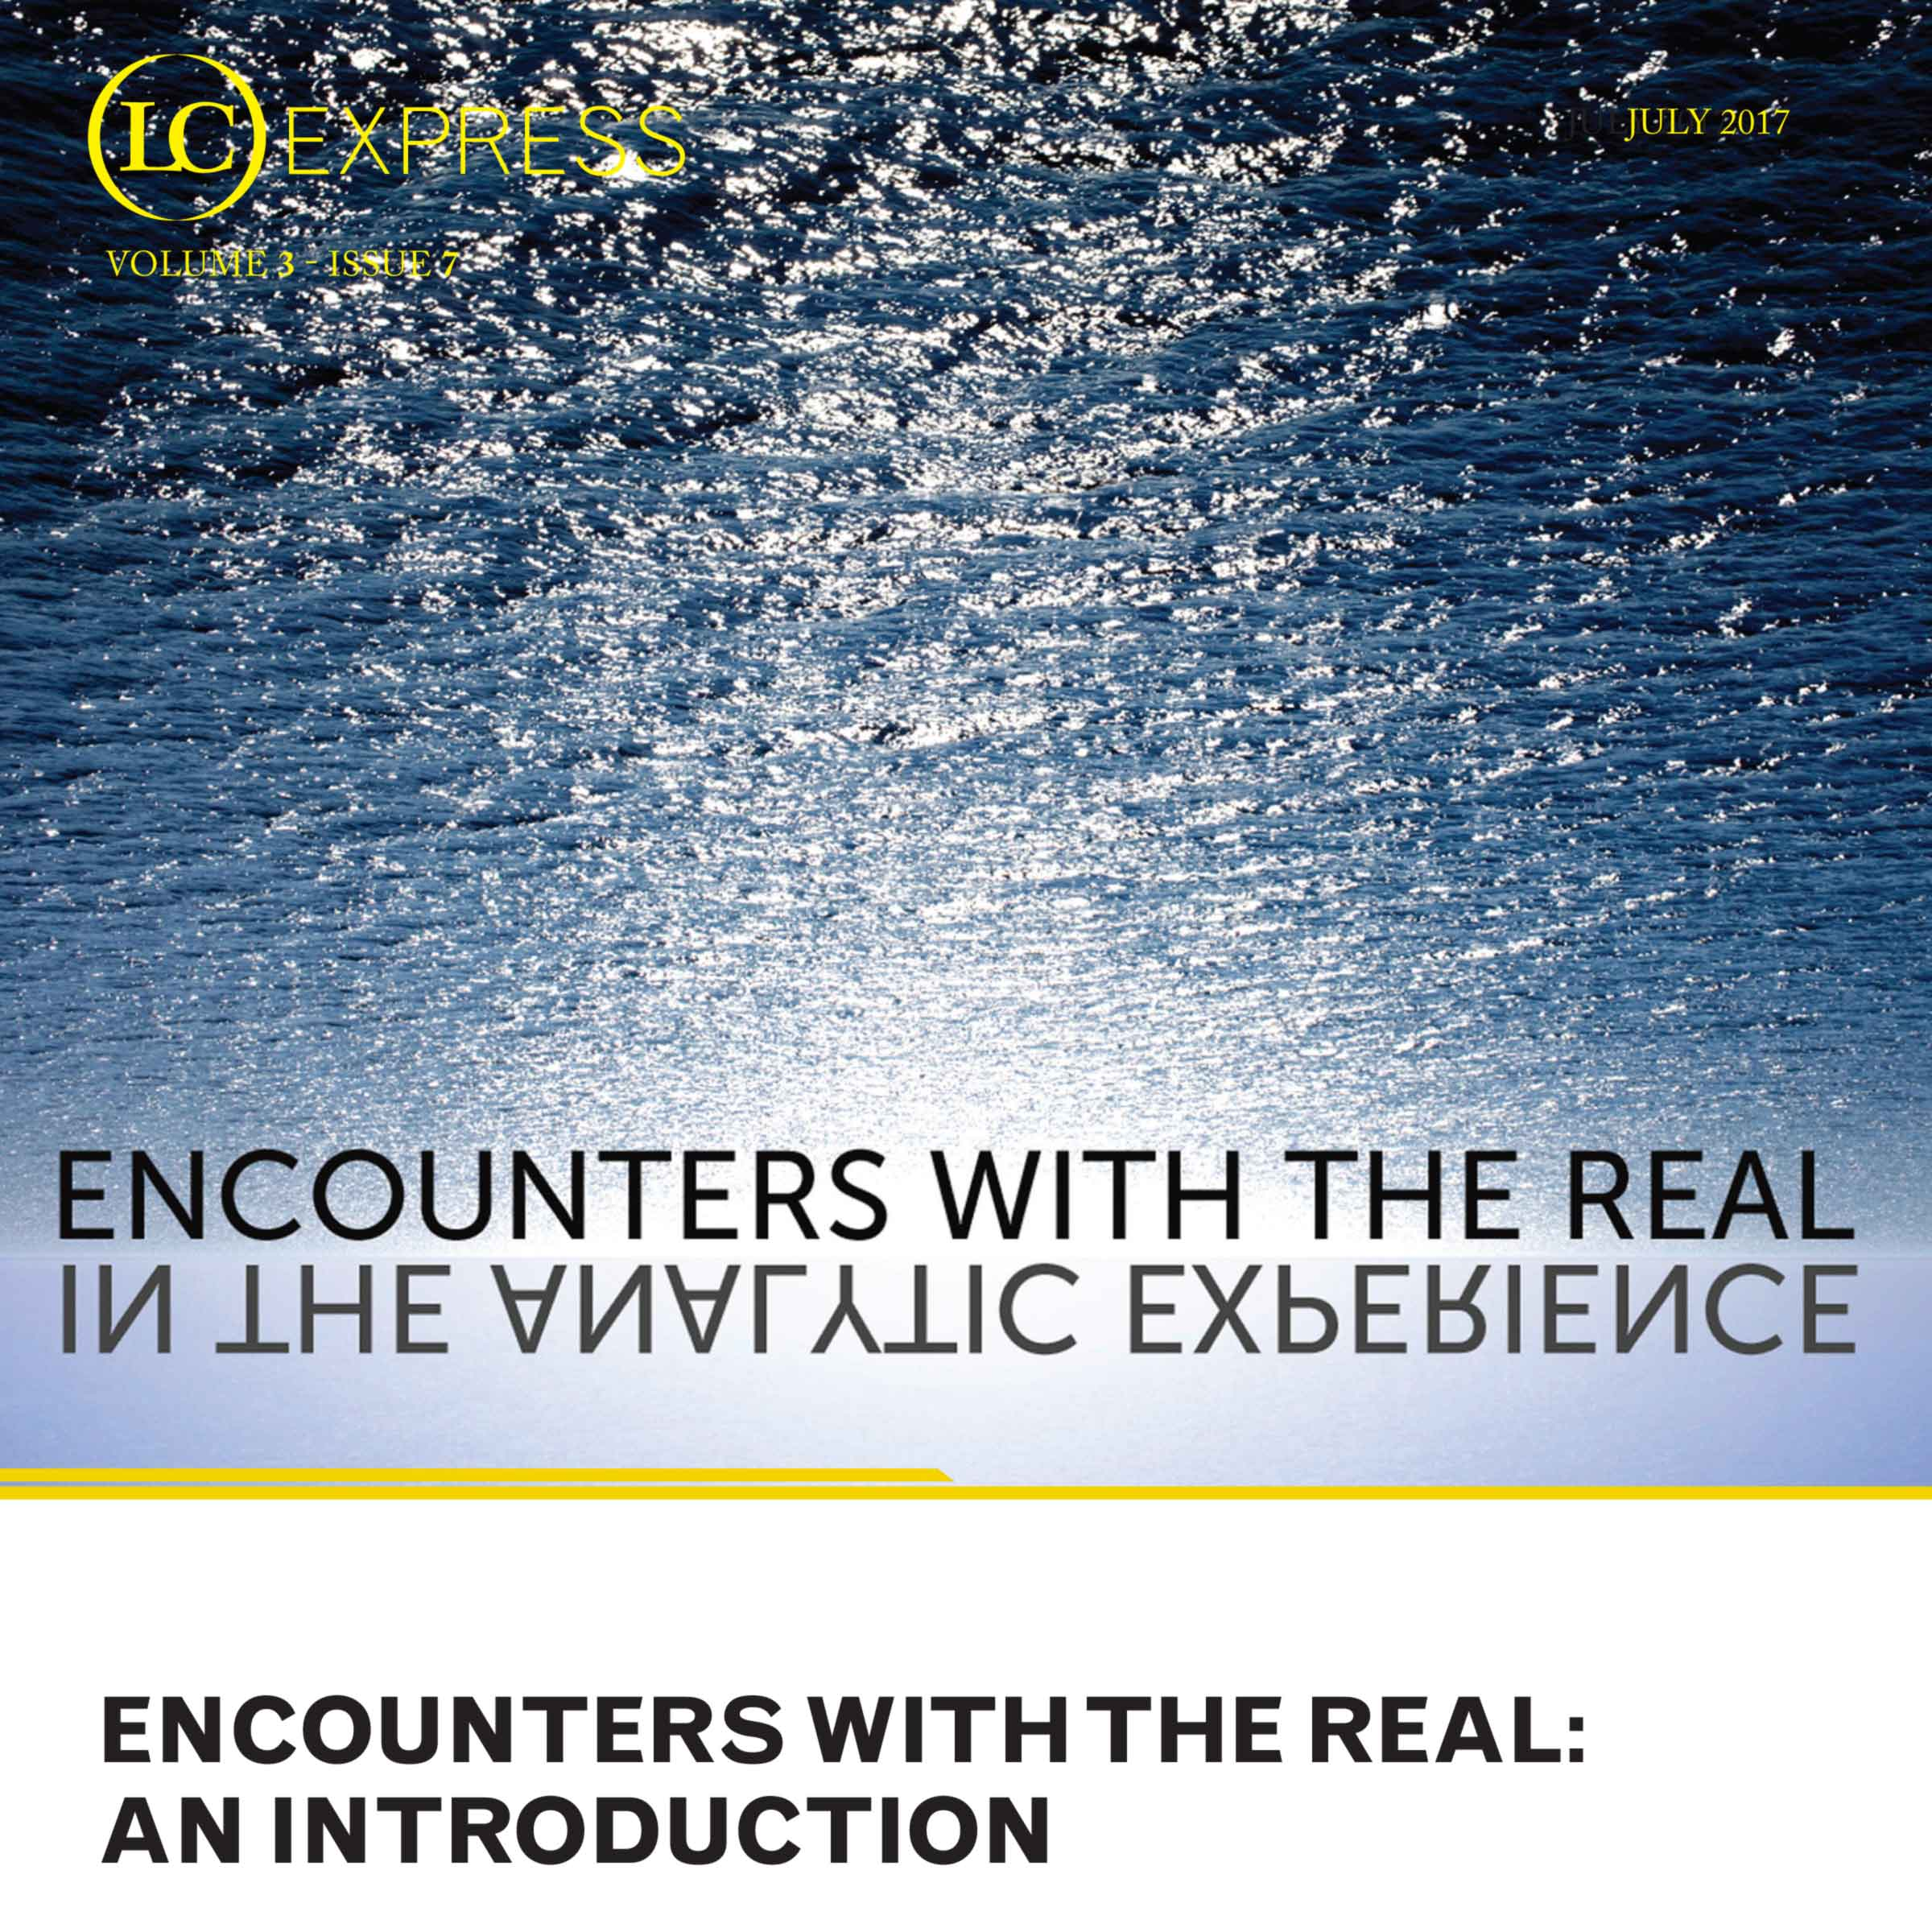 LCExpress Volume 3 / Issue 7  Encounters with the Real: An Introduction   Vicente Palomera